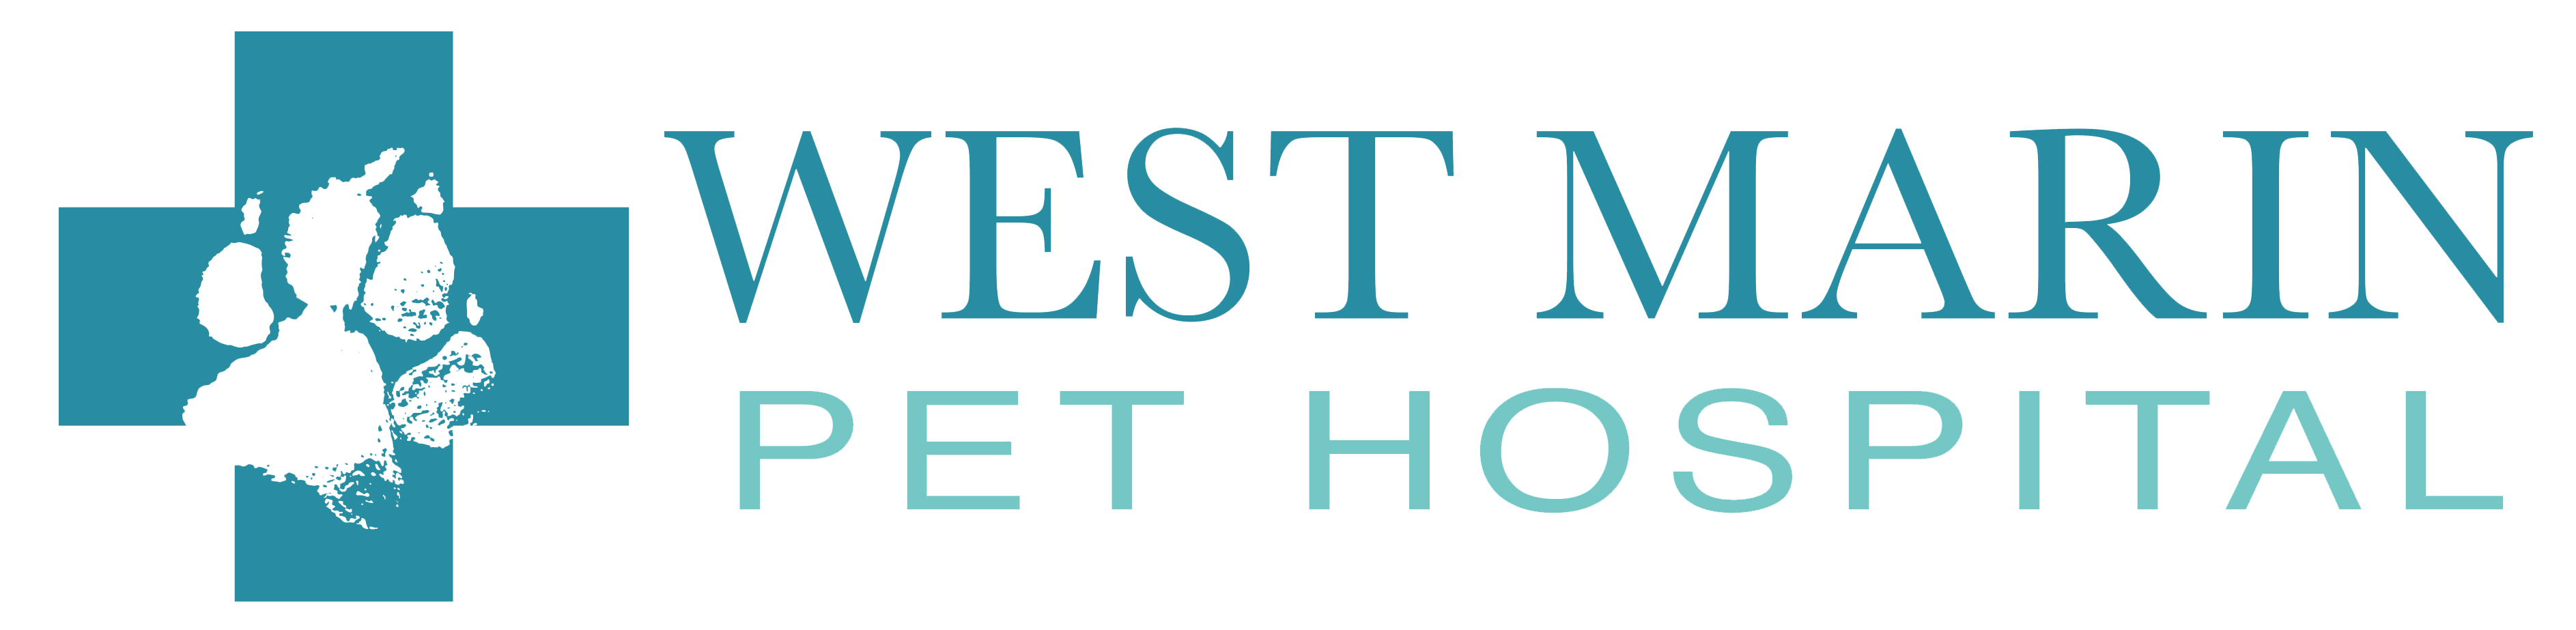 West Marin Pet Hospital